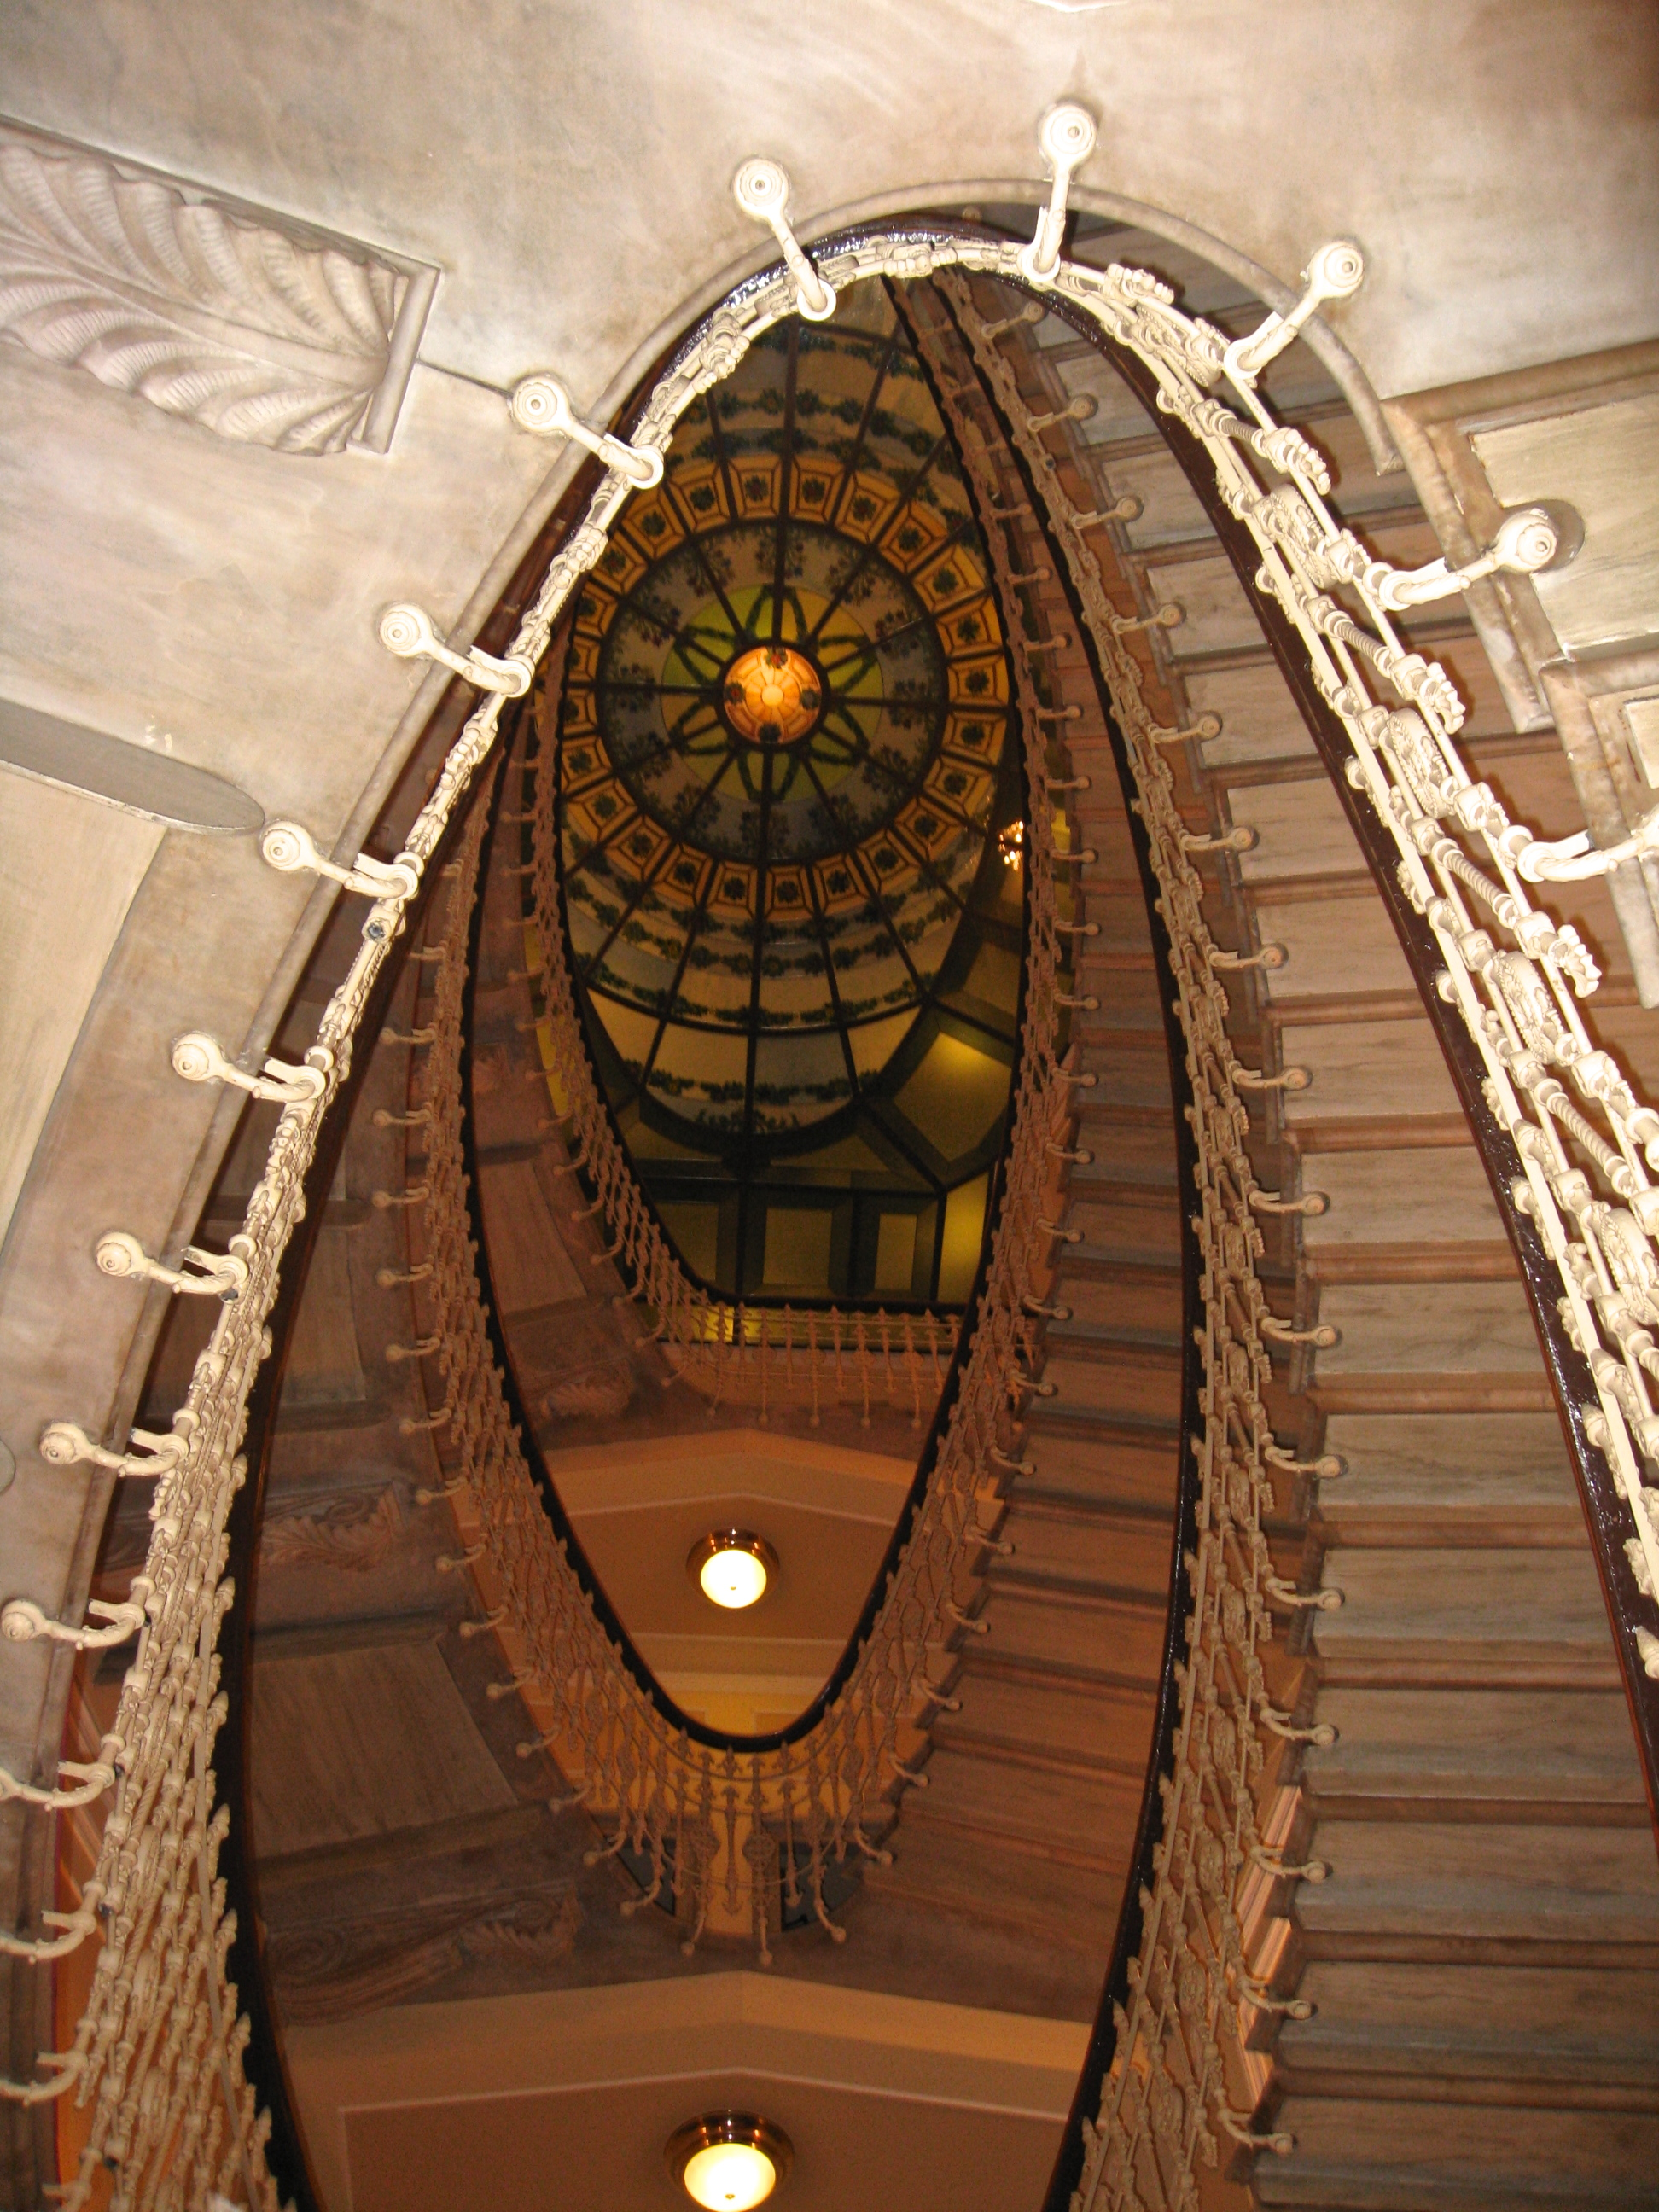 Staircase in Hotel Bristol Palace, Genoa Italy